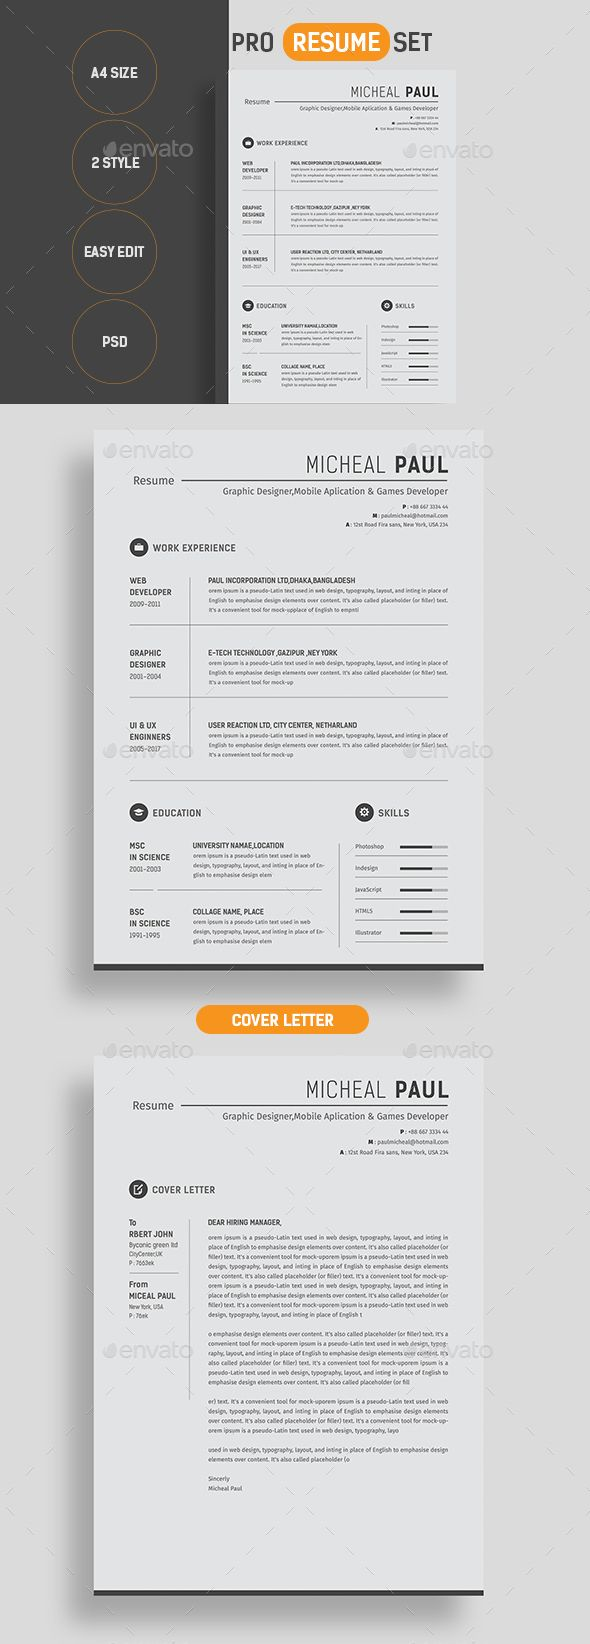 Template For A Cover Letter For A Resume%0A Pro Resume  Infographic ResumeResume Cover LettersResume DesignJob SeekersResume  TemplatesStationeryFonts